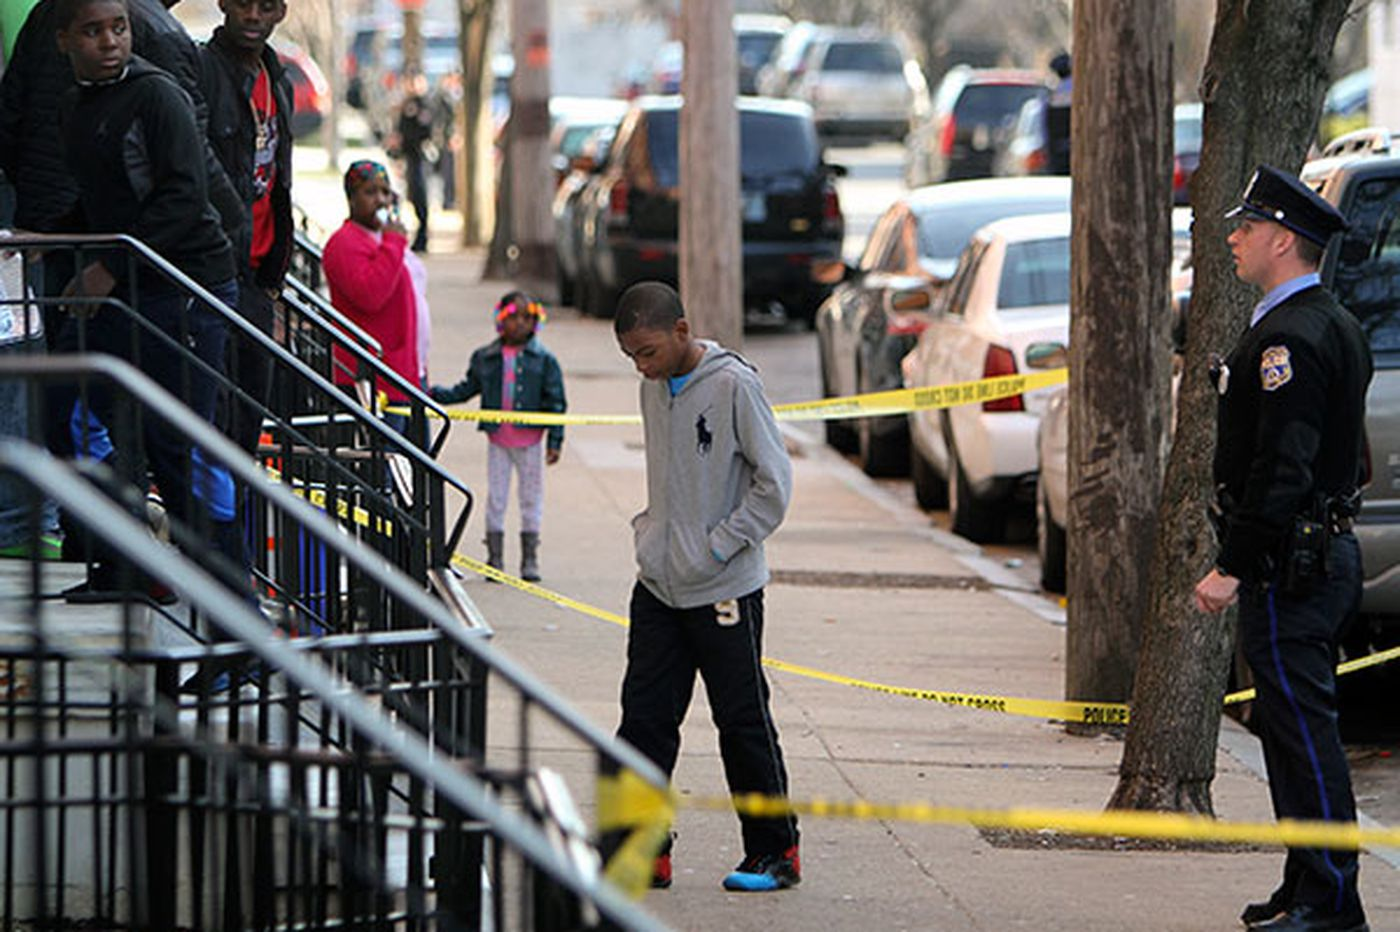 Police probe shootings that killed one 11-year-old, wounded another